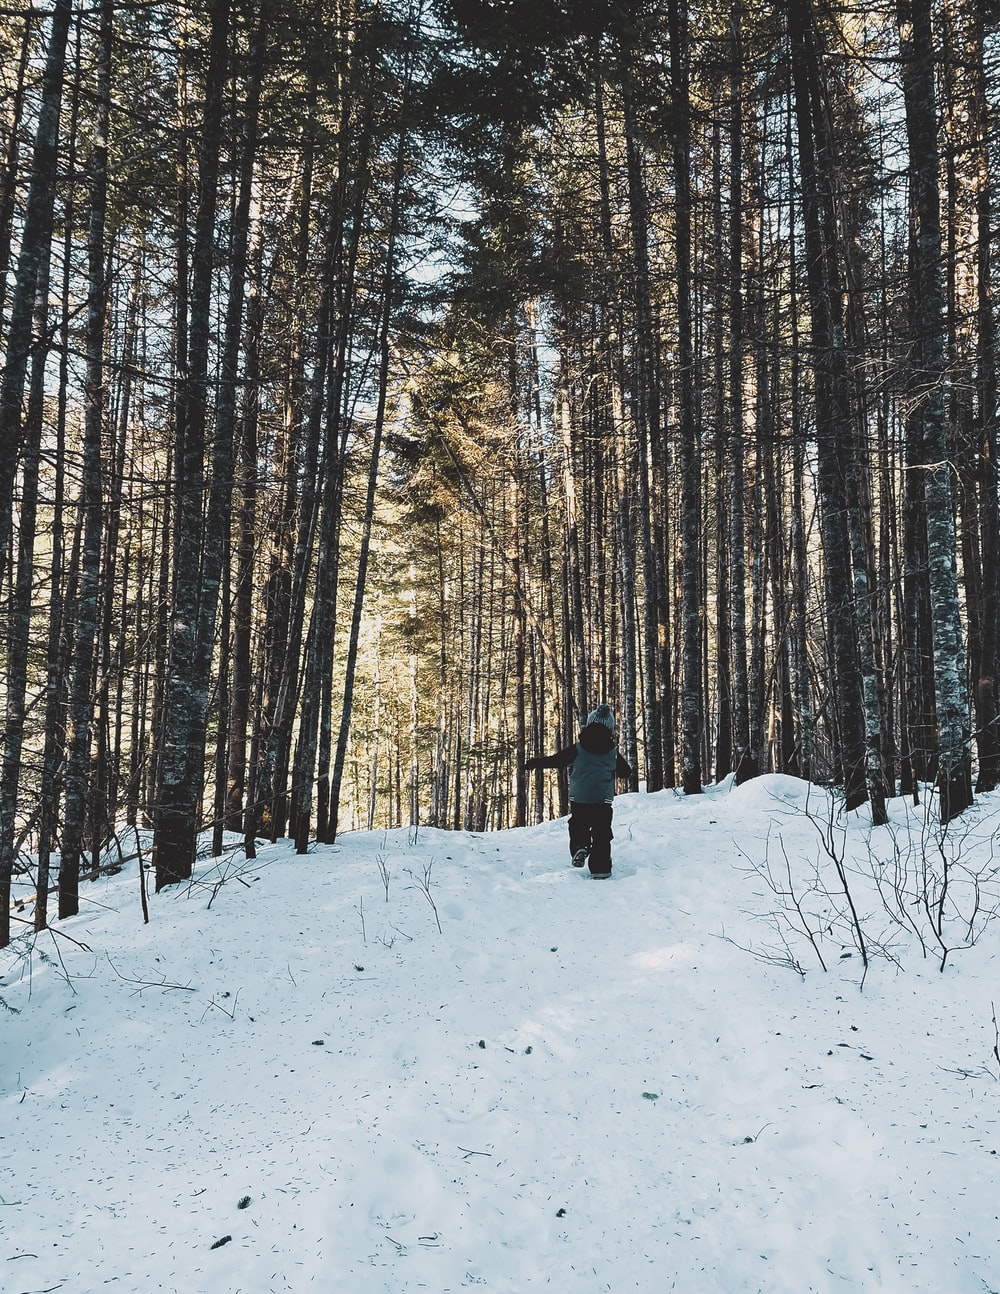 person in black jacket standing on snow covered ground near trees during daytime